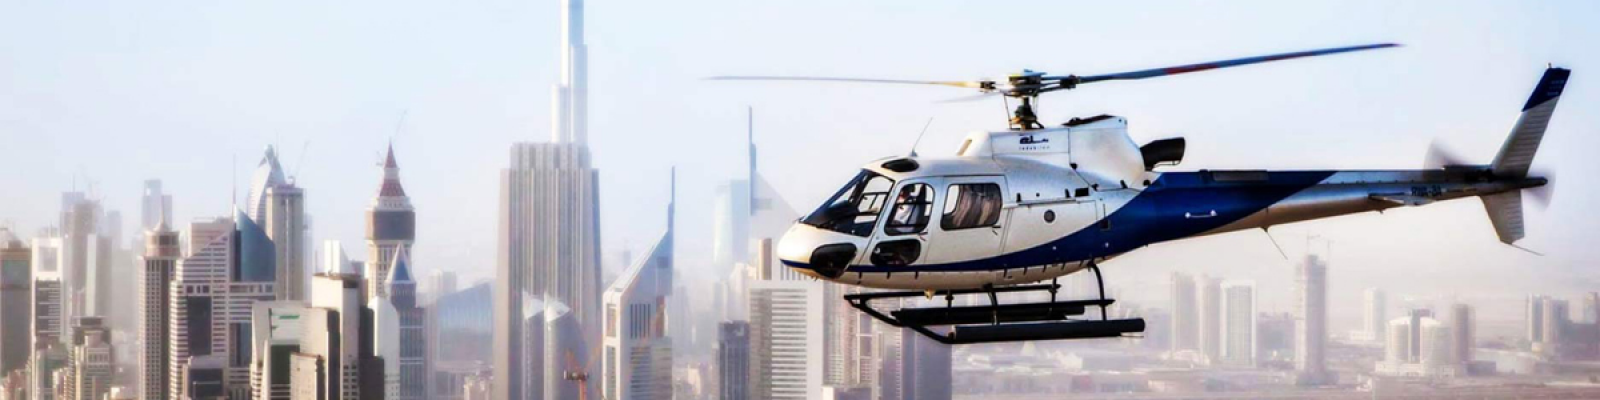 dubai helicopter tour deals, night helicopter tour dubai, helicopter booking in dubai